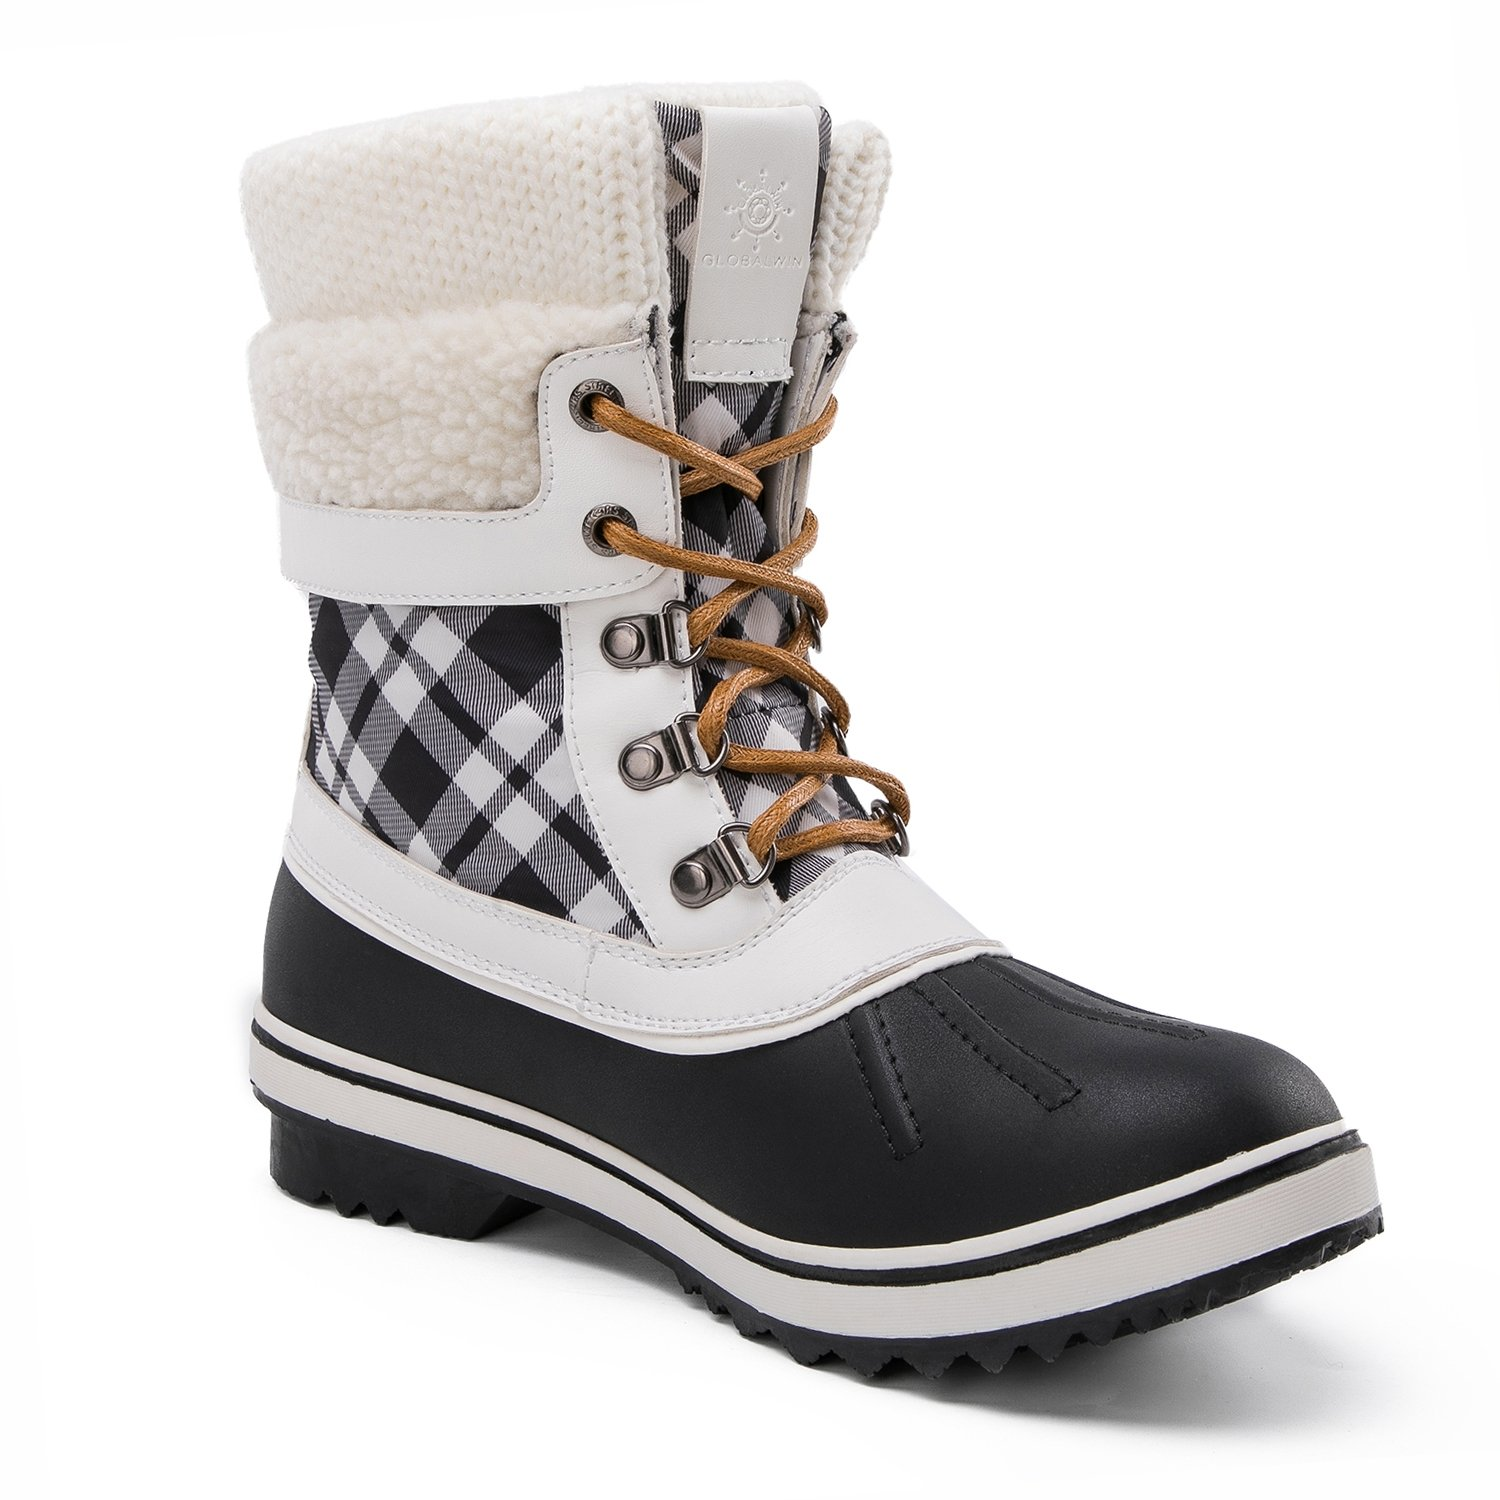 Global Win GLOBALWIN Women's Waterproof Winter Snow Boots B074G5H8V5 7 M US|Black/White